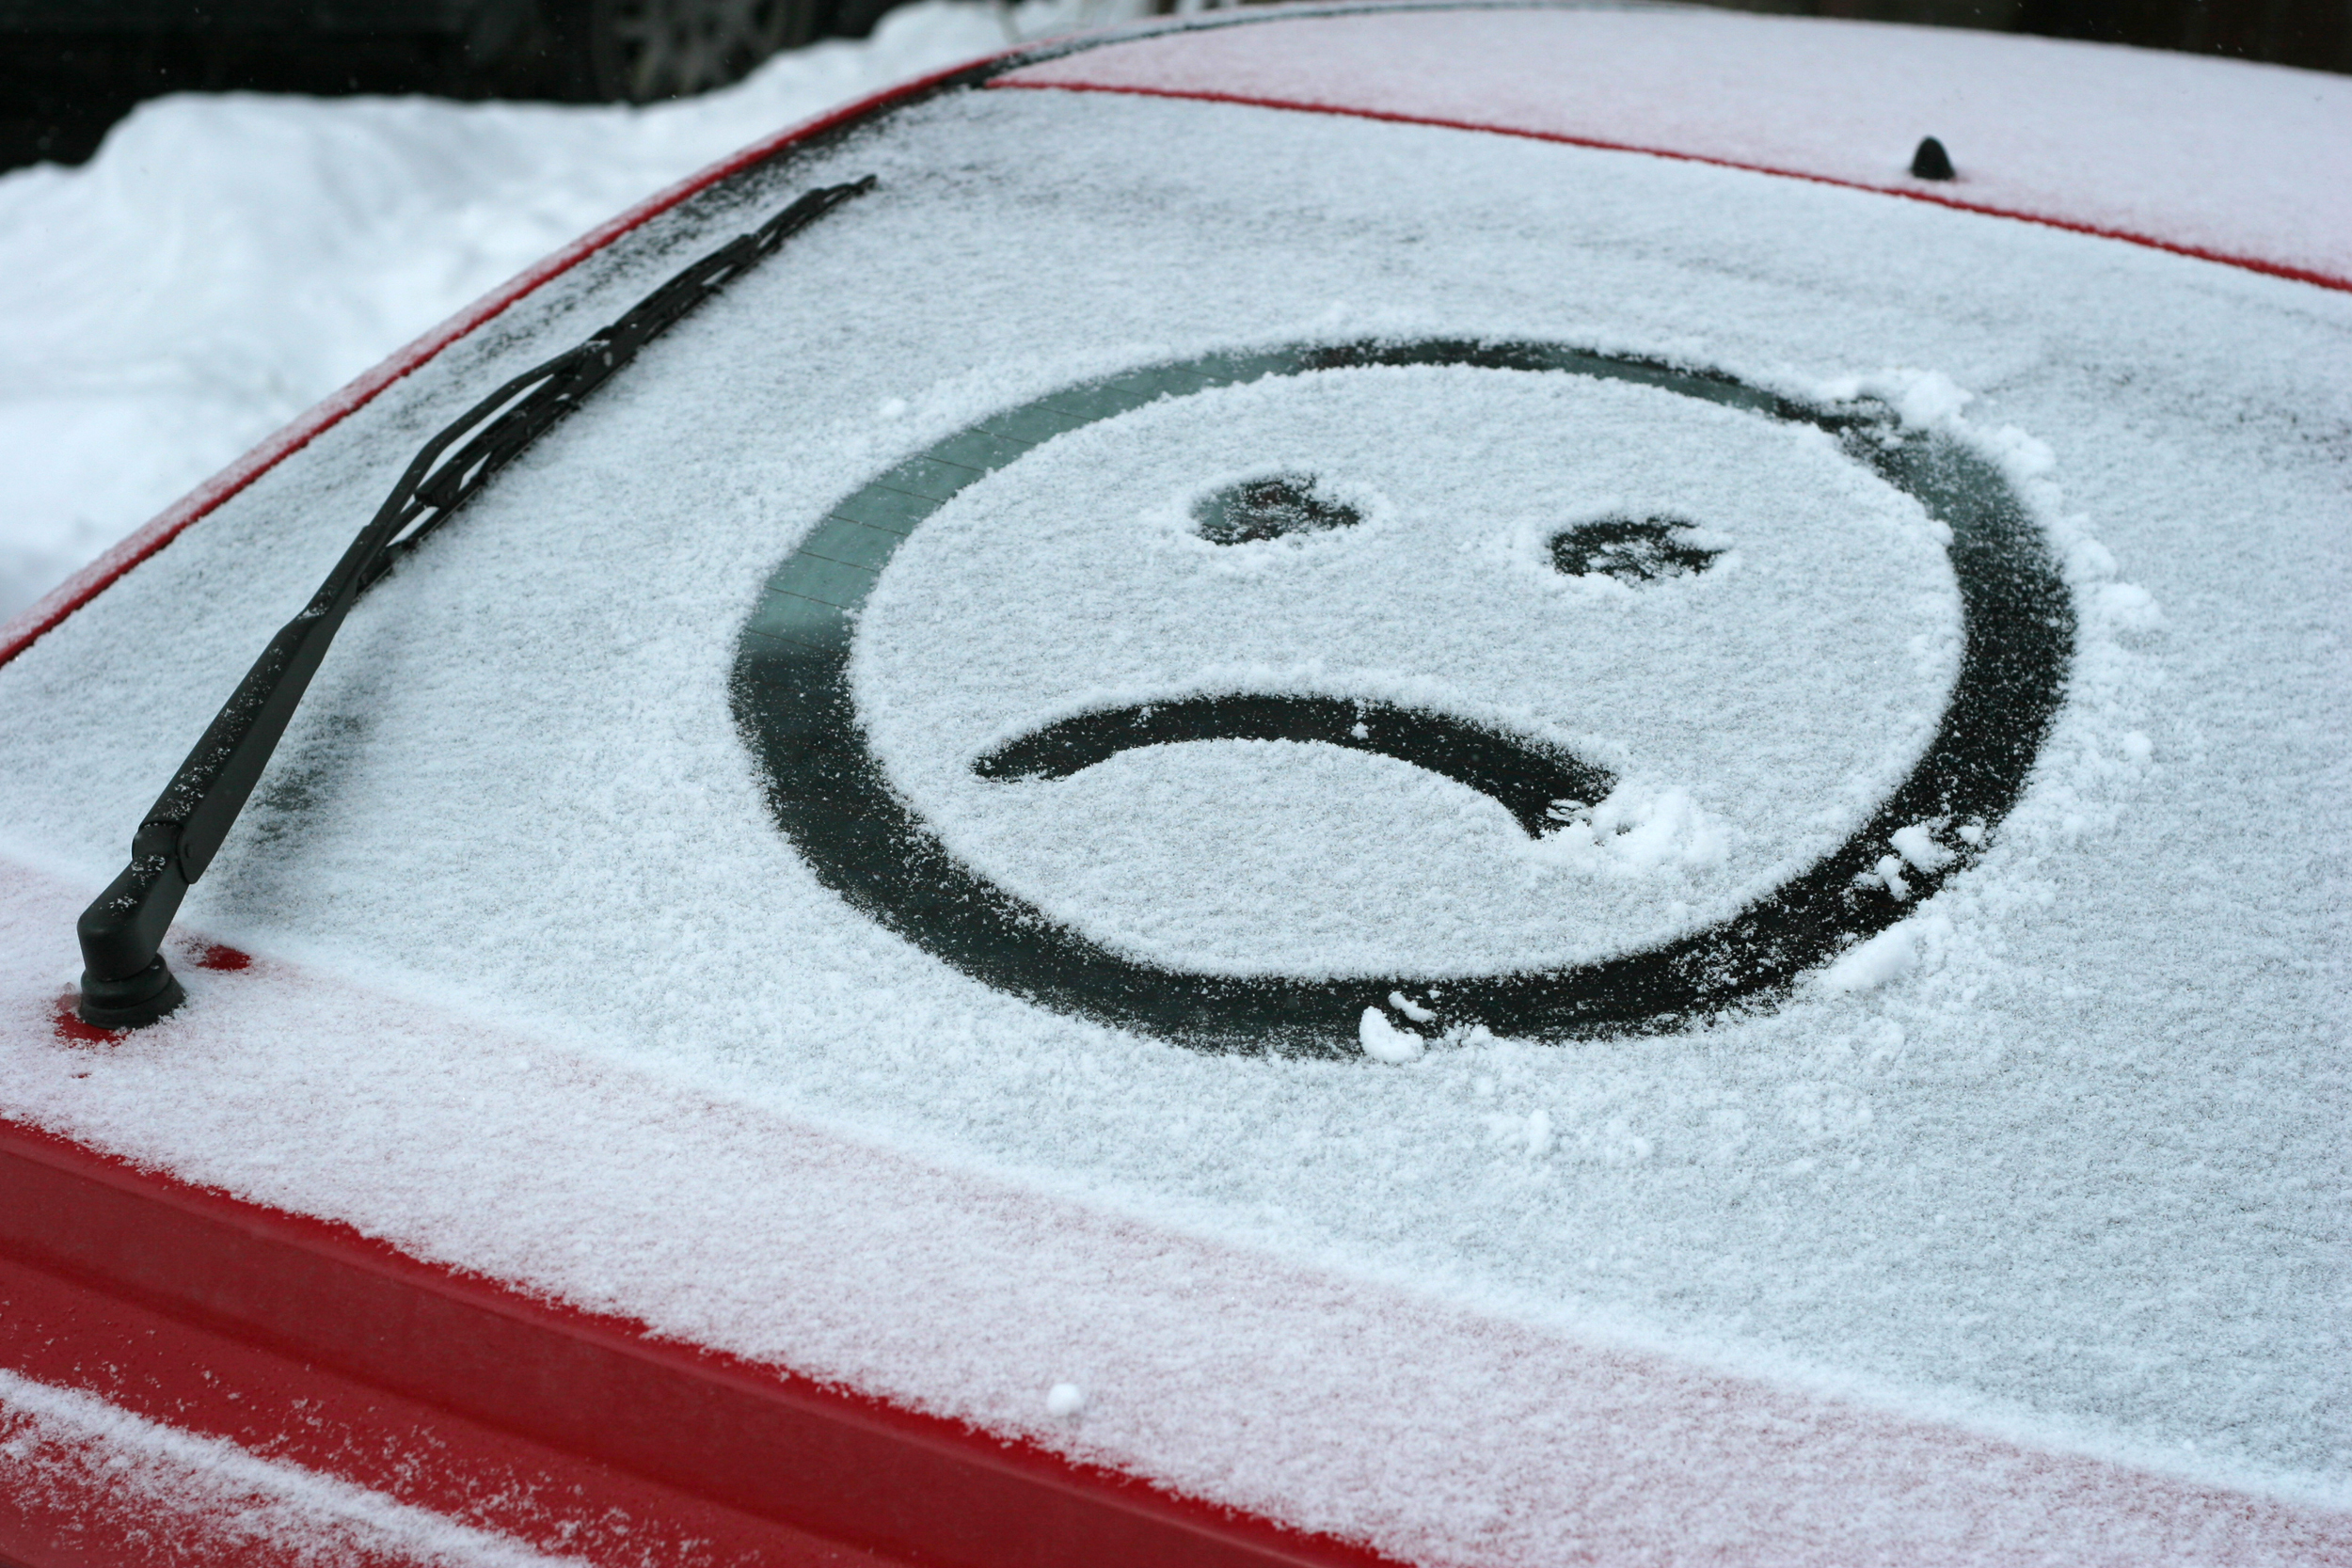 nbcnews.trib.al - What Is Seasonal Affective Disorder? It's More Than the Winter Blues